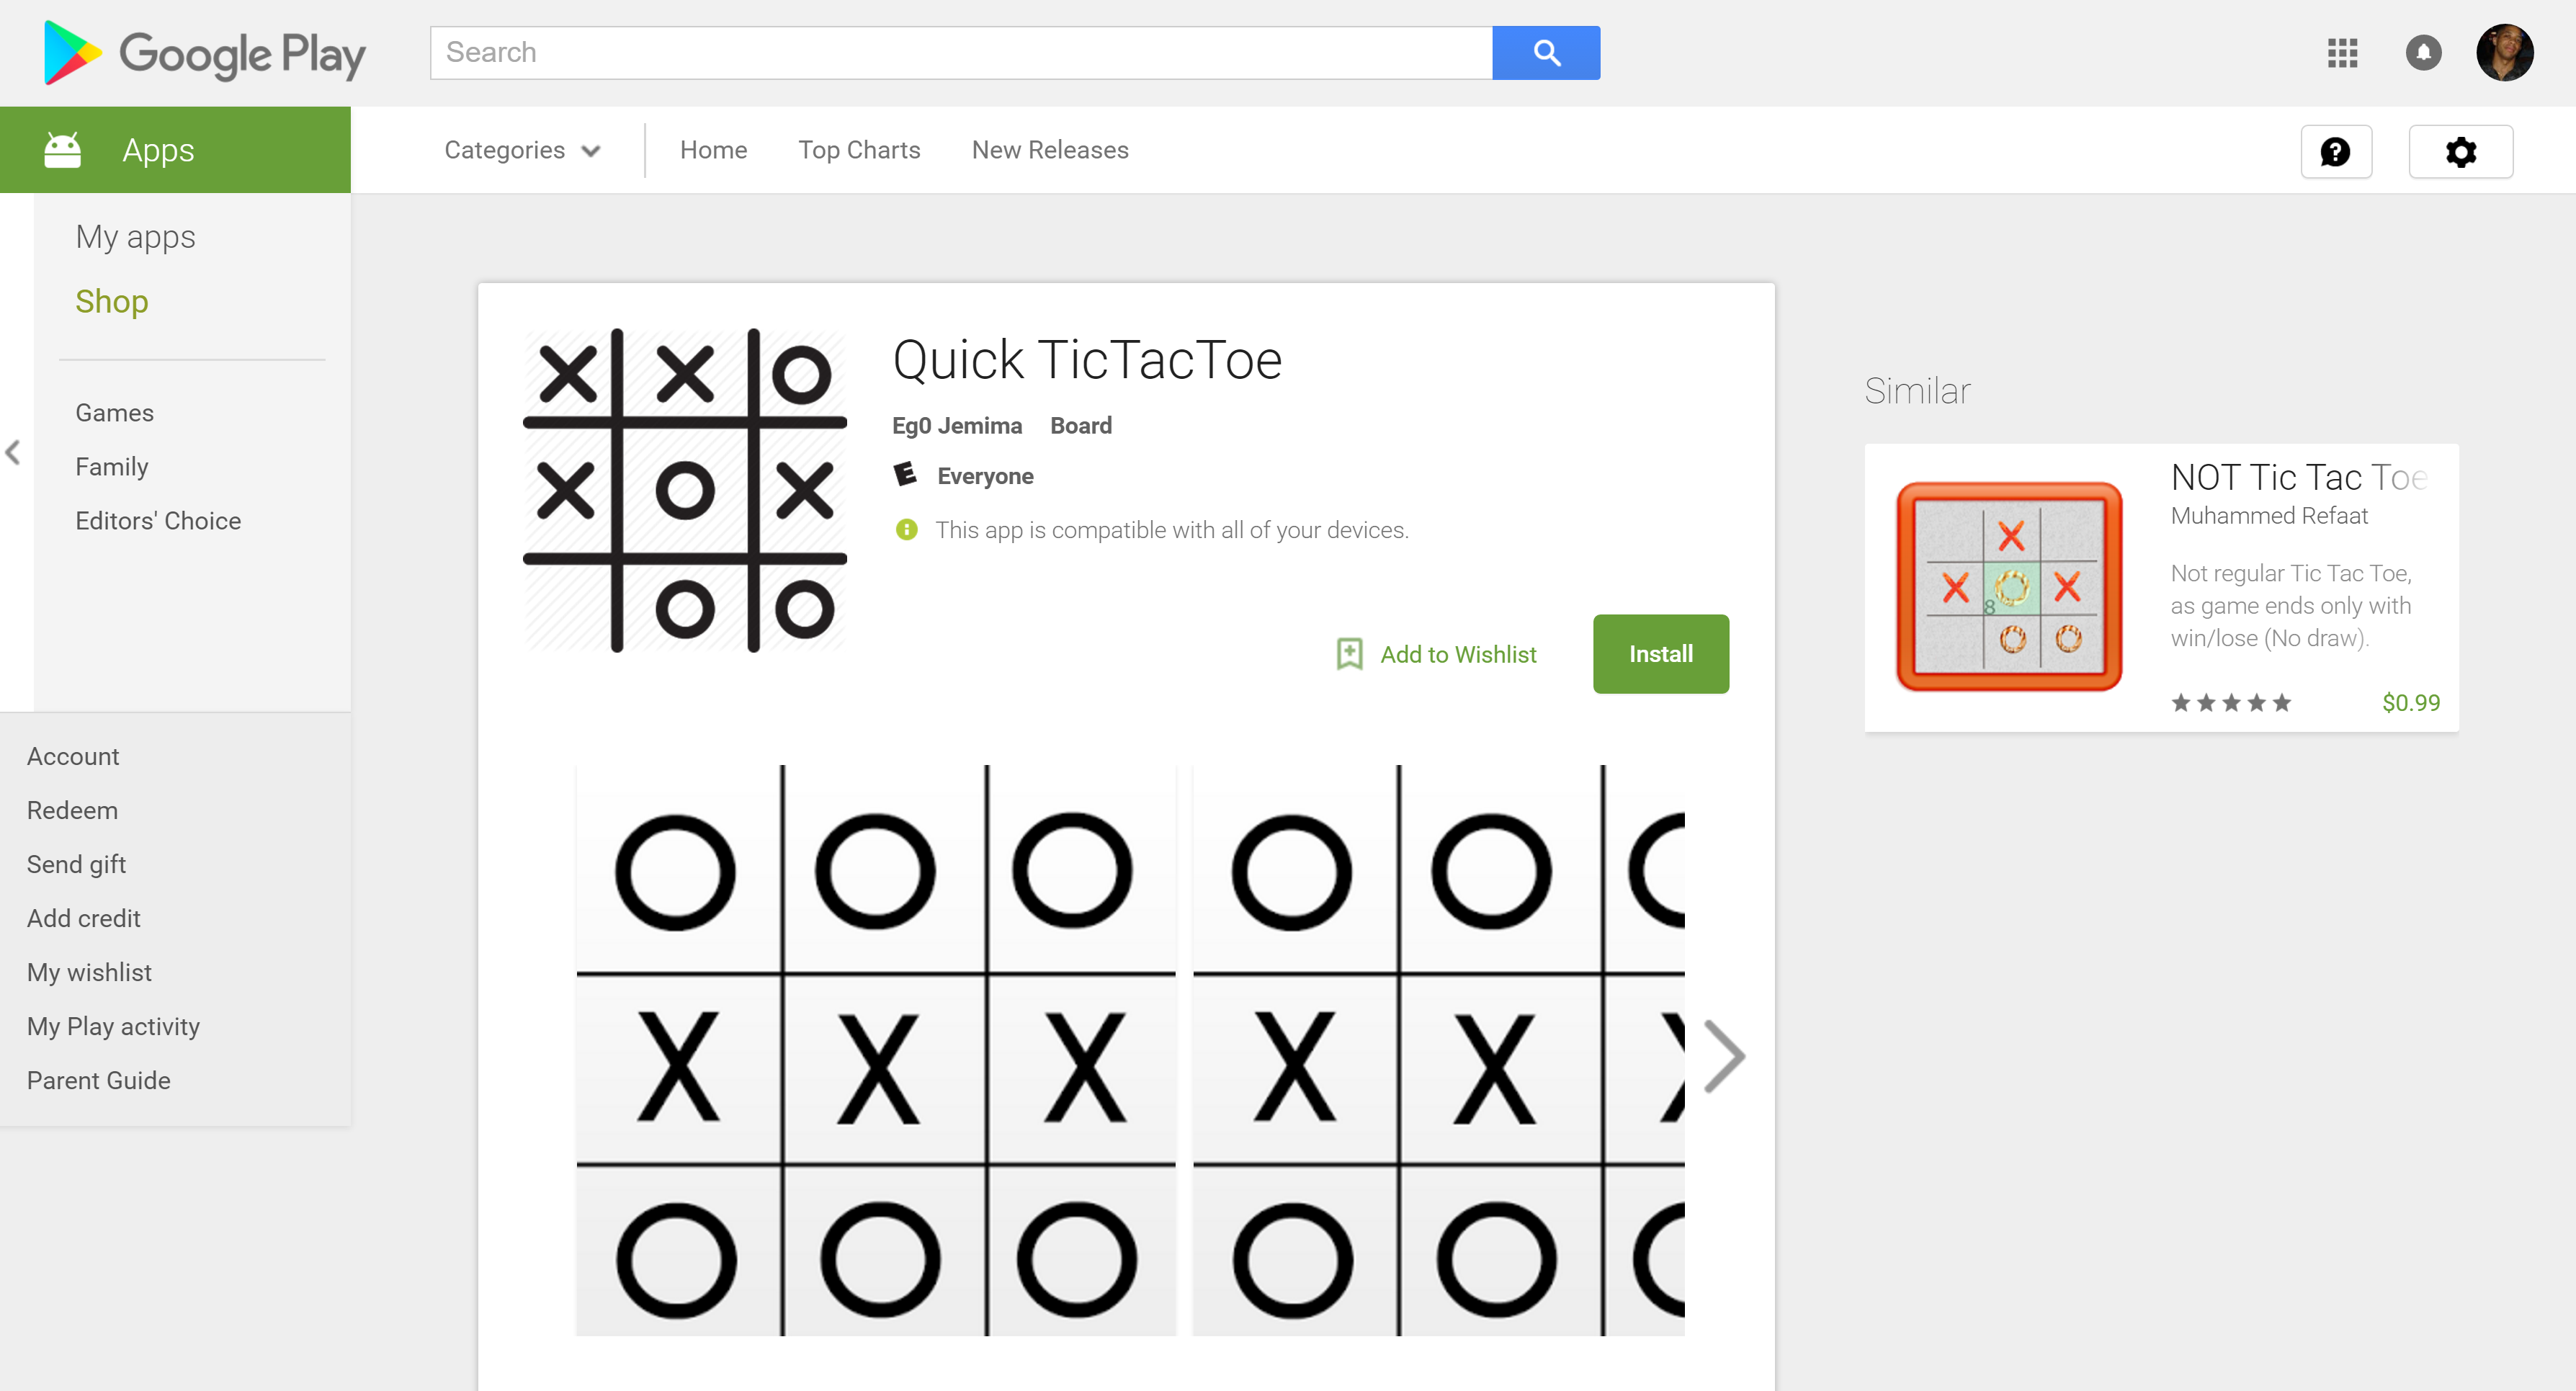 Quick Tic Tac Toe